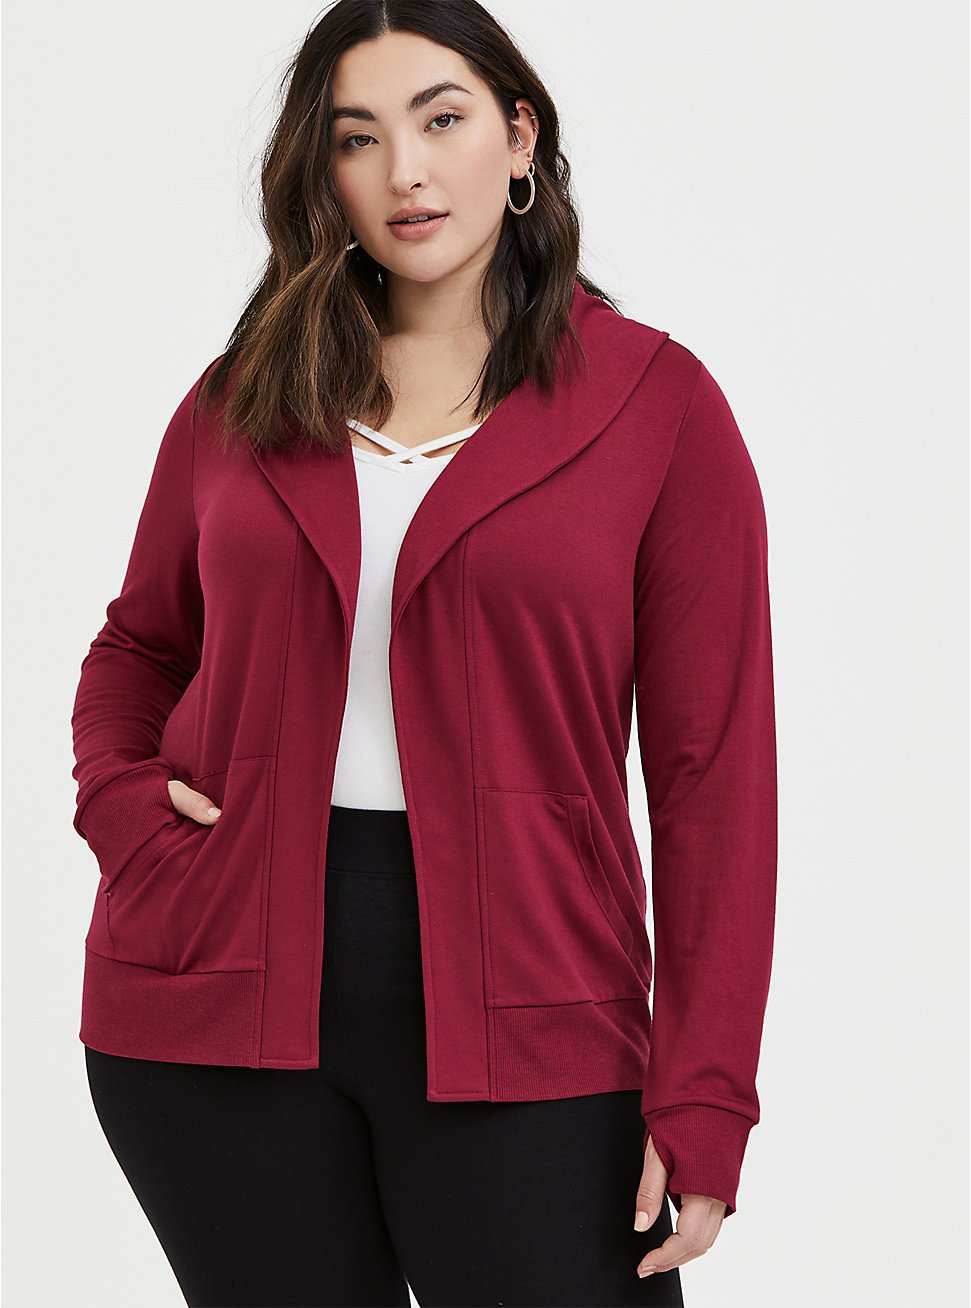 Red Wine Terry Open Front Jacket, BEET RED, hi-res